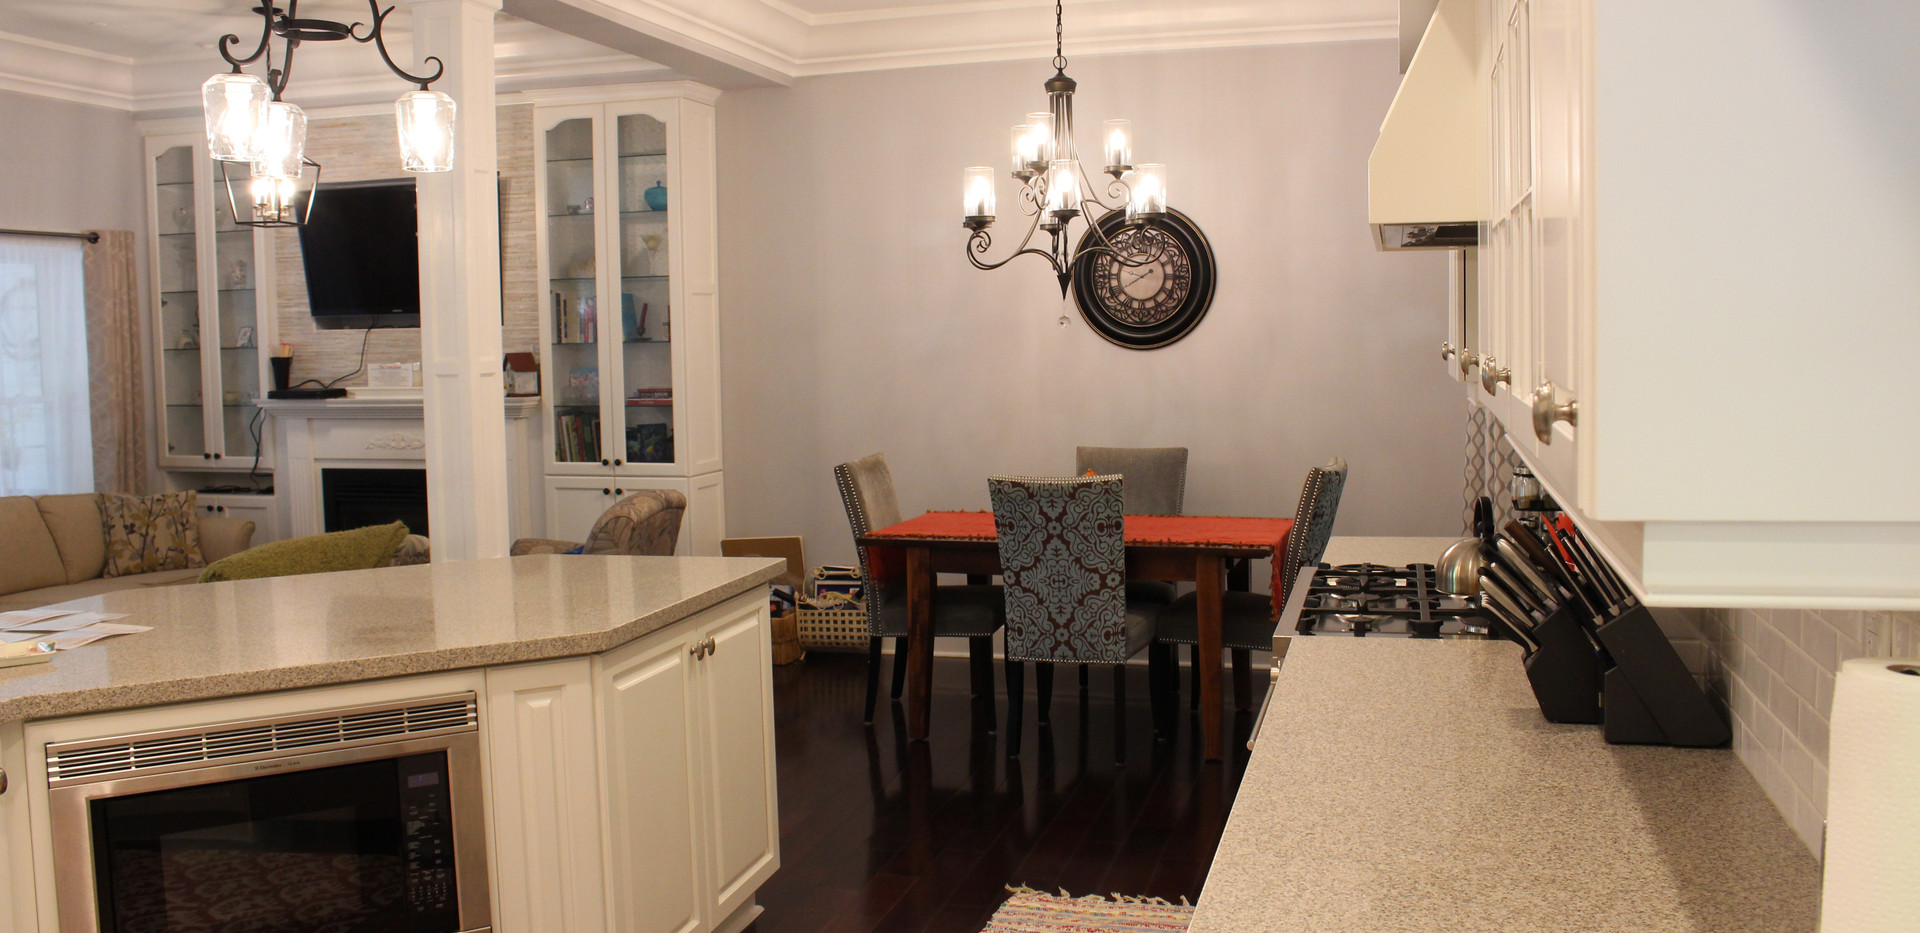 Kitchen View with Dinning Area